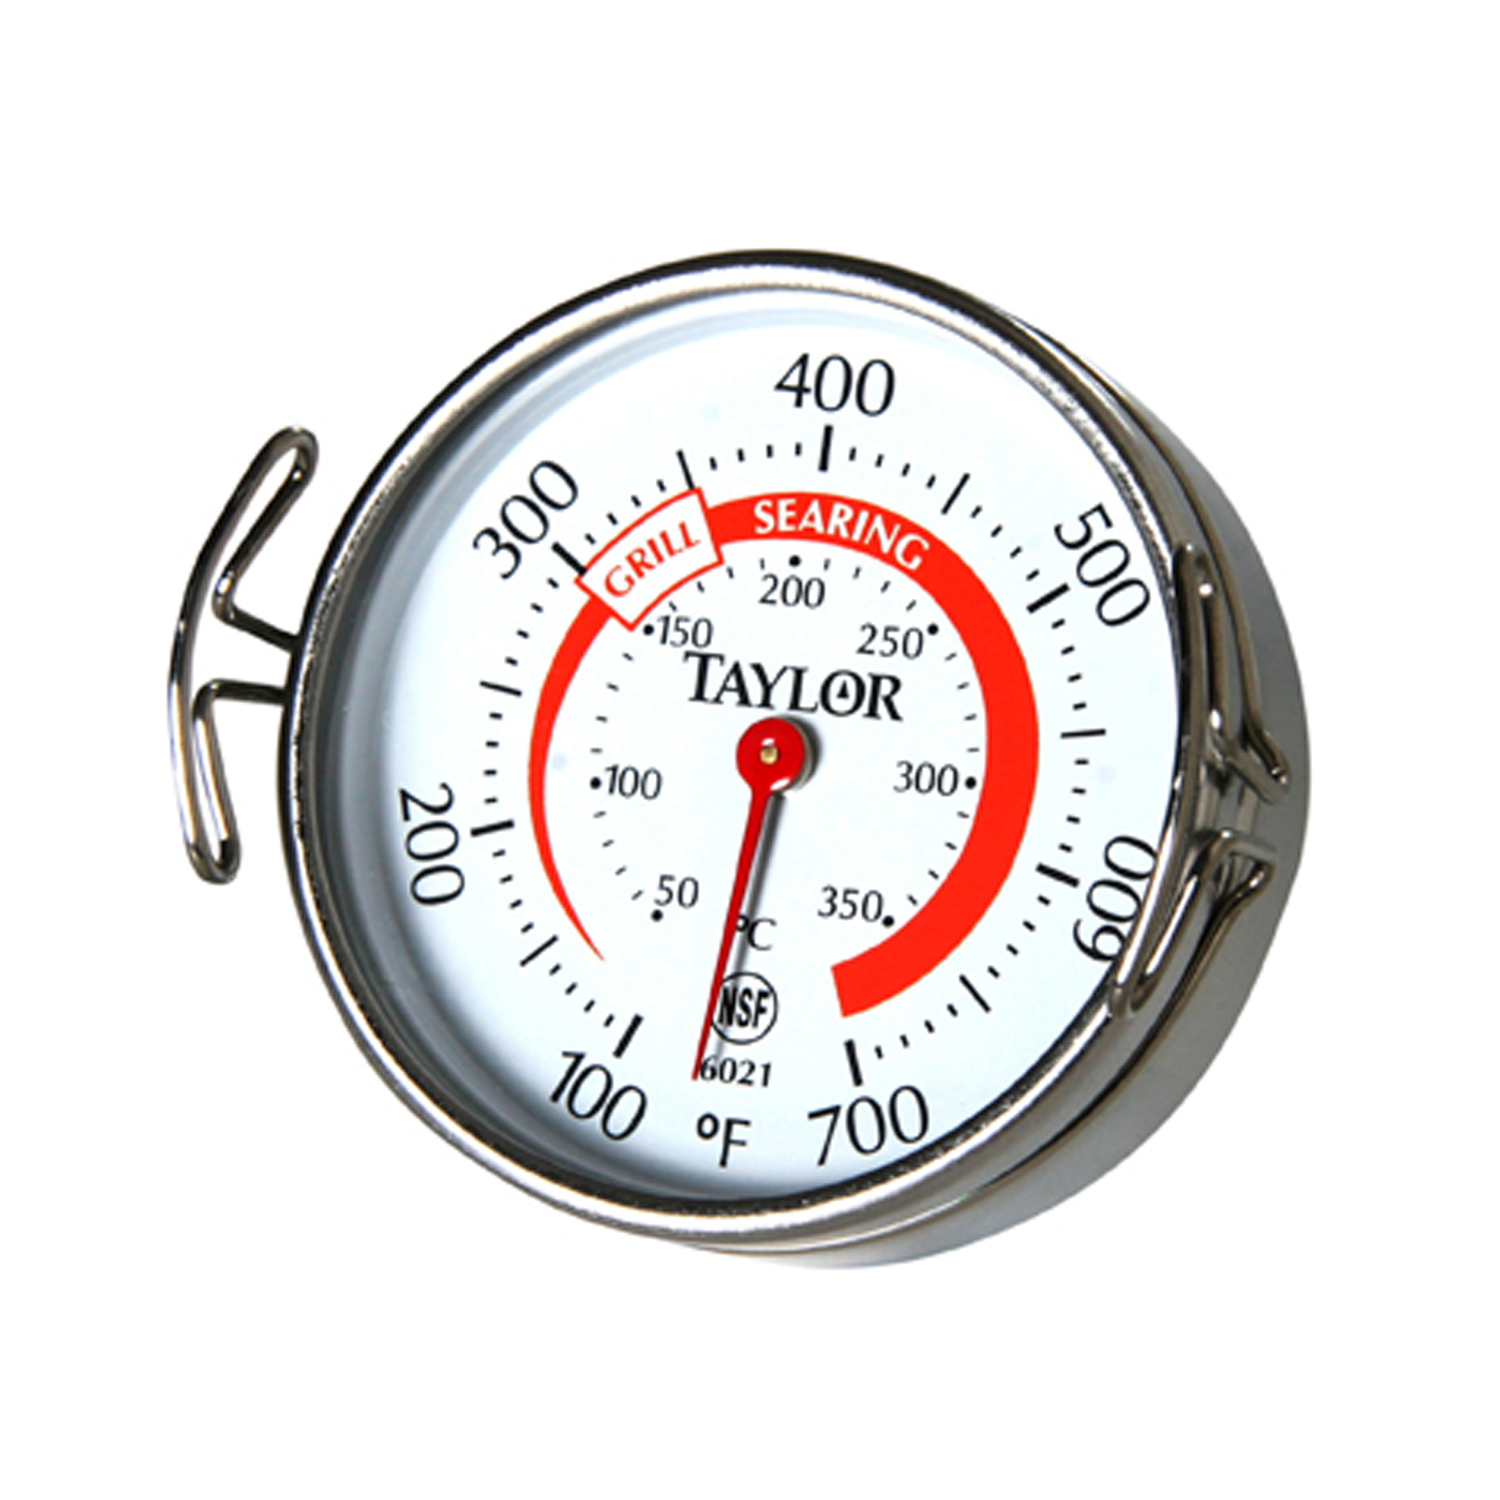 Taylor  Analog  Barbecue Grill Thermometer